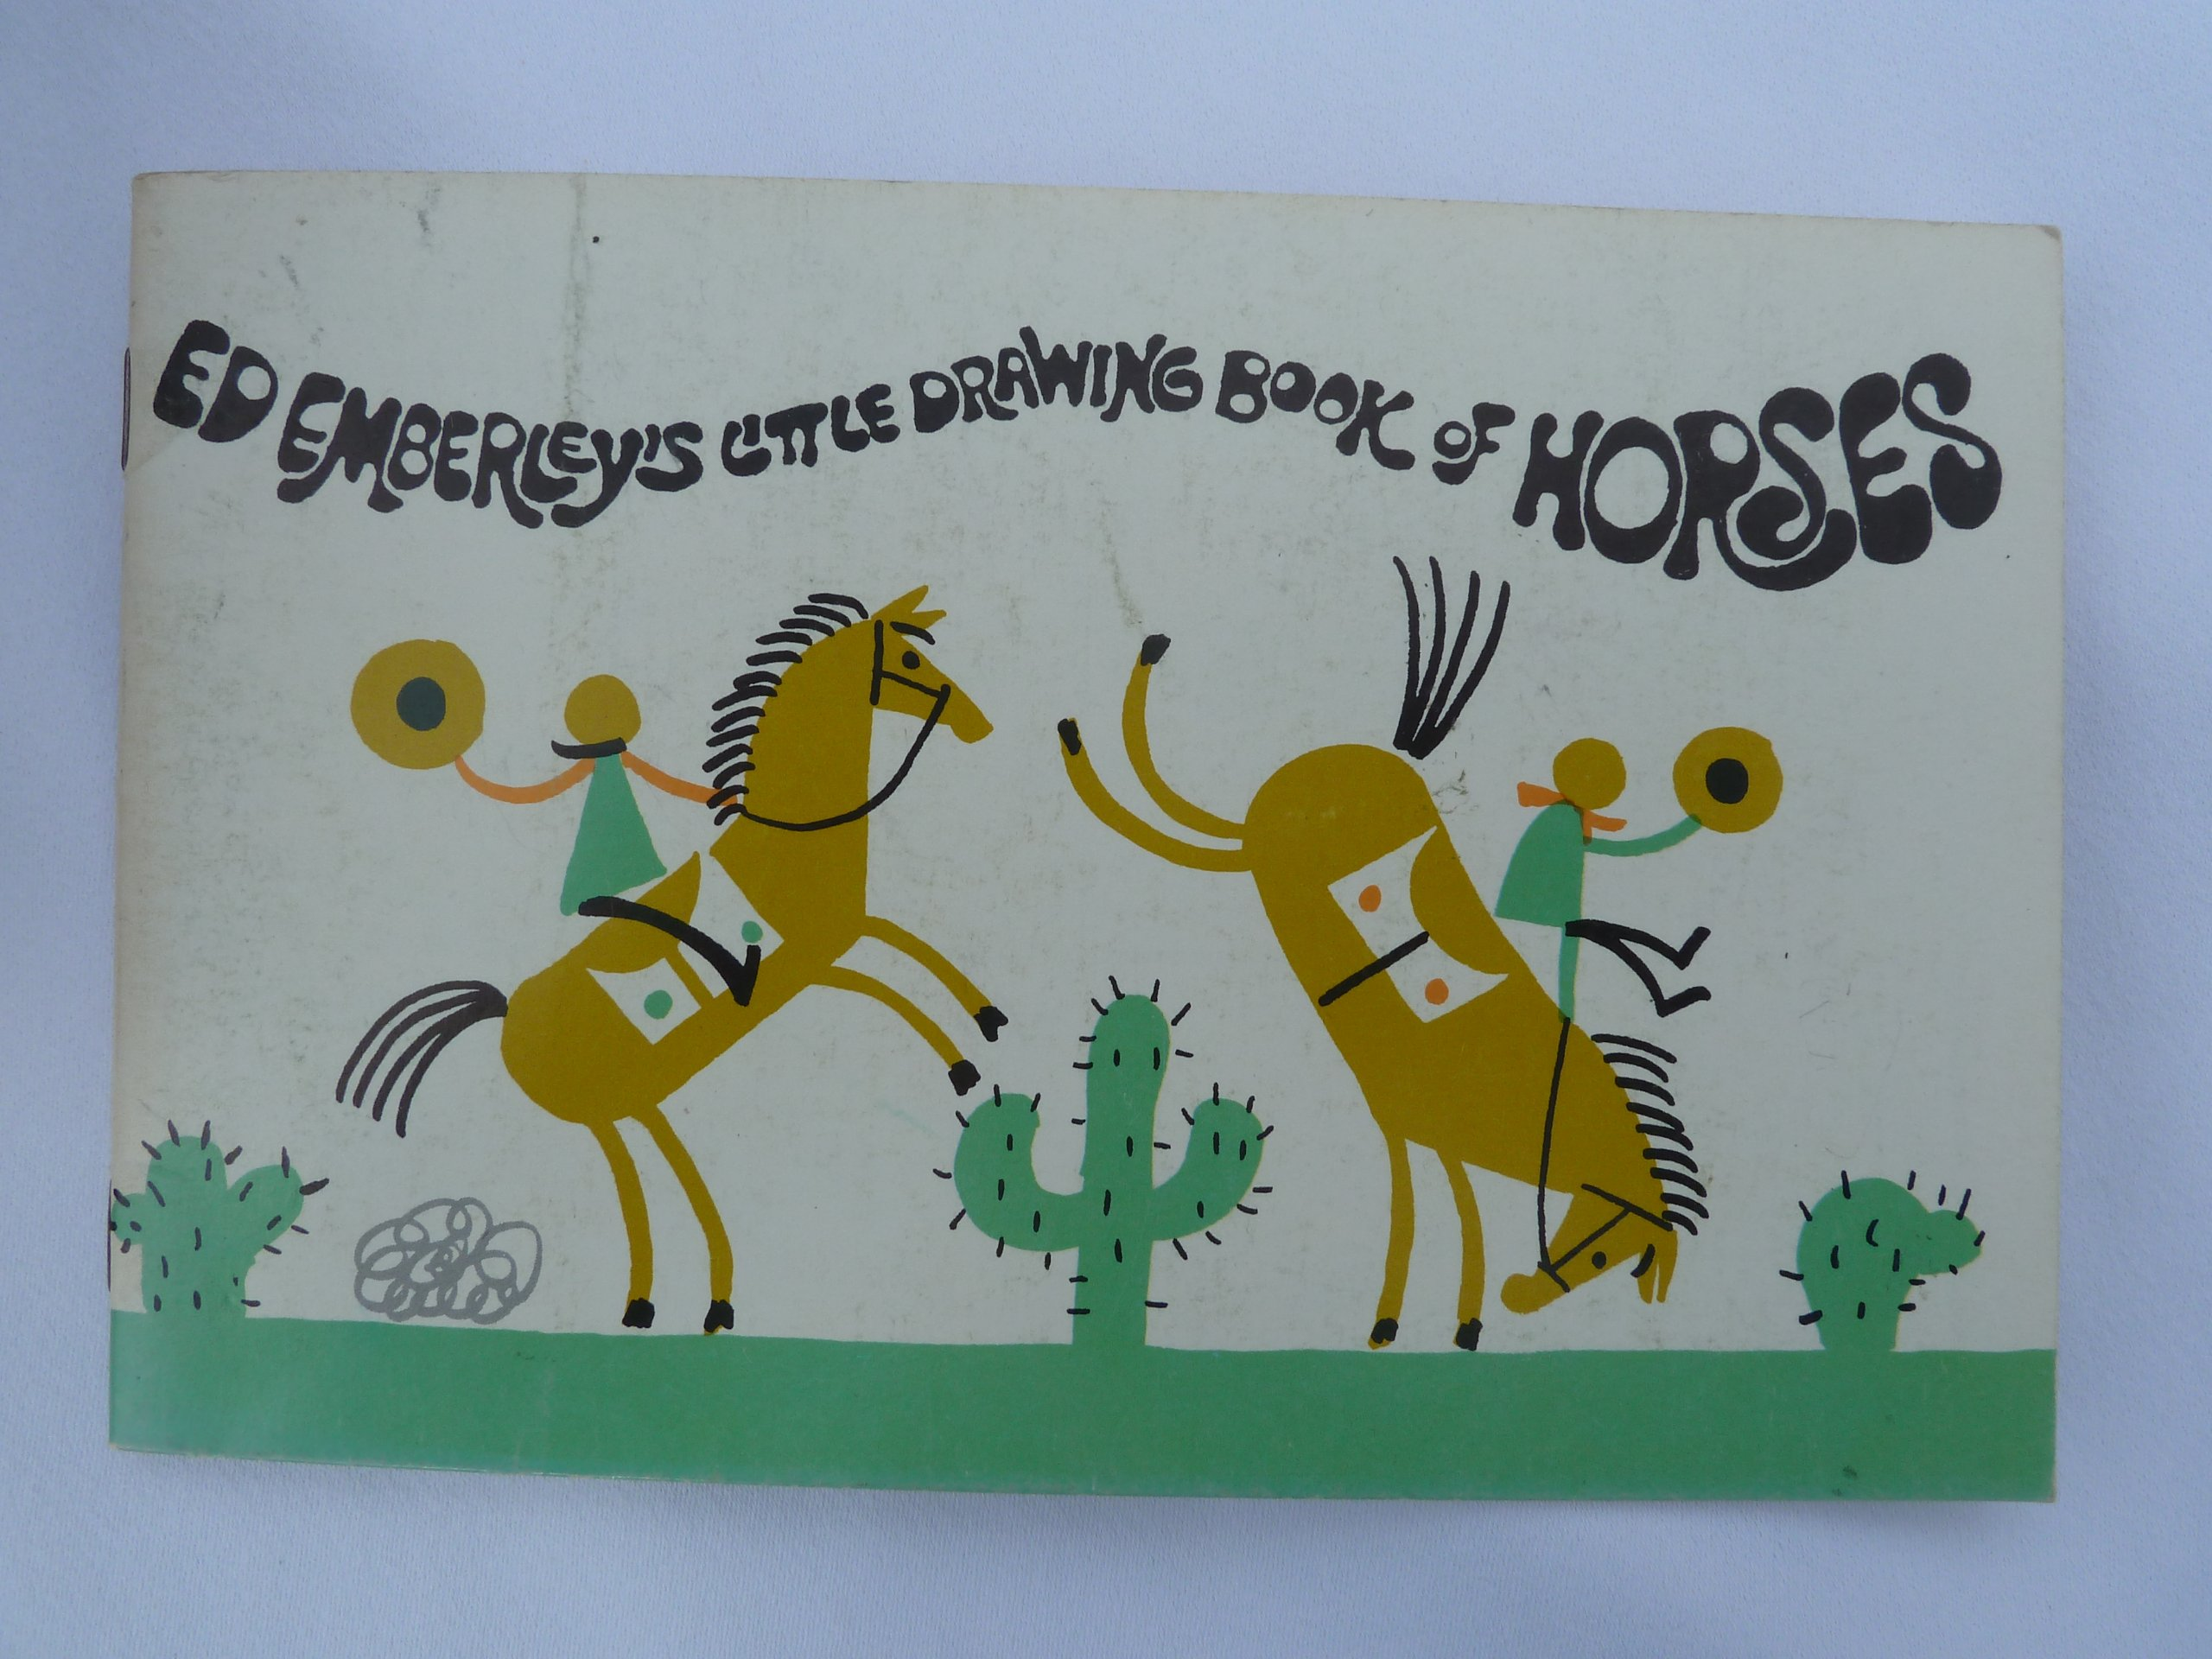 Ed Emberley's Little Drawing Book of Horses